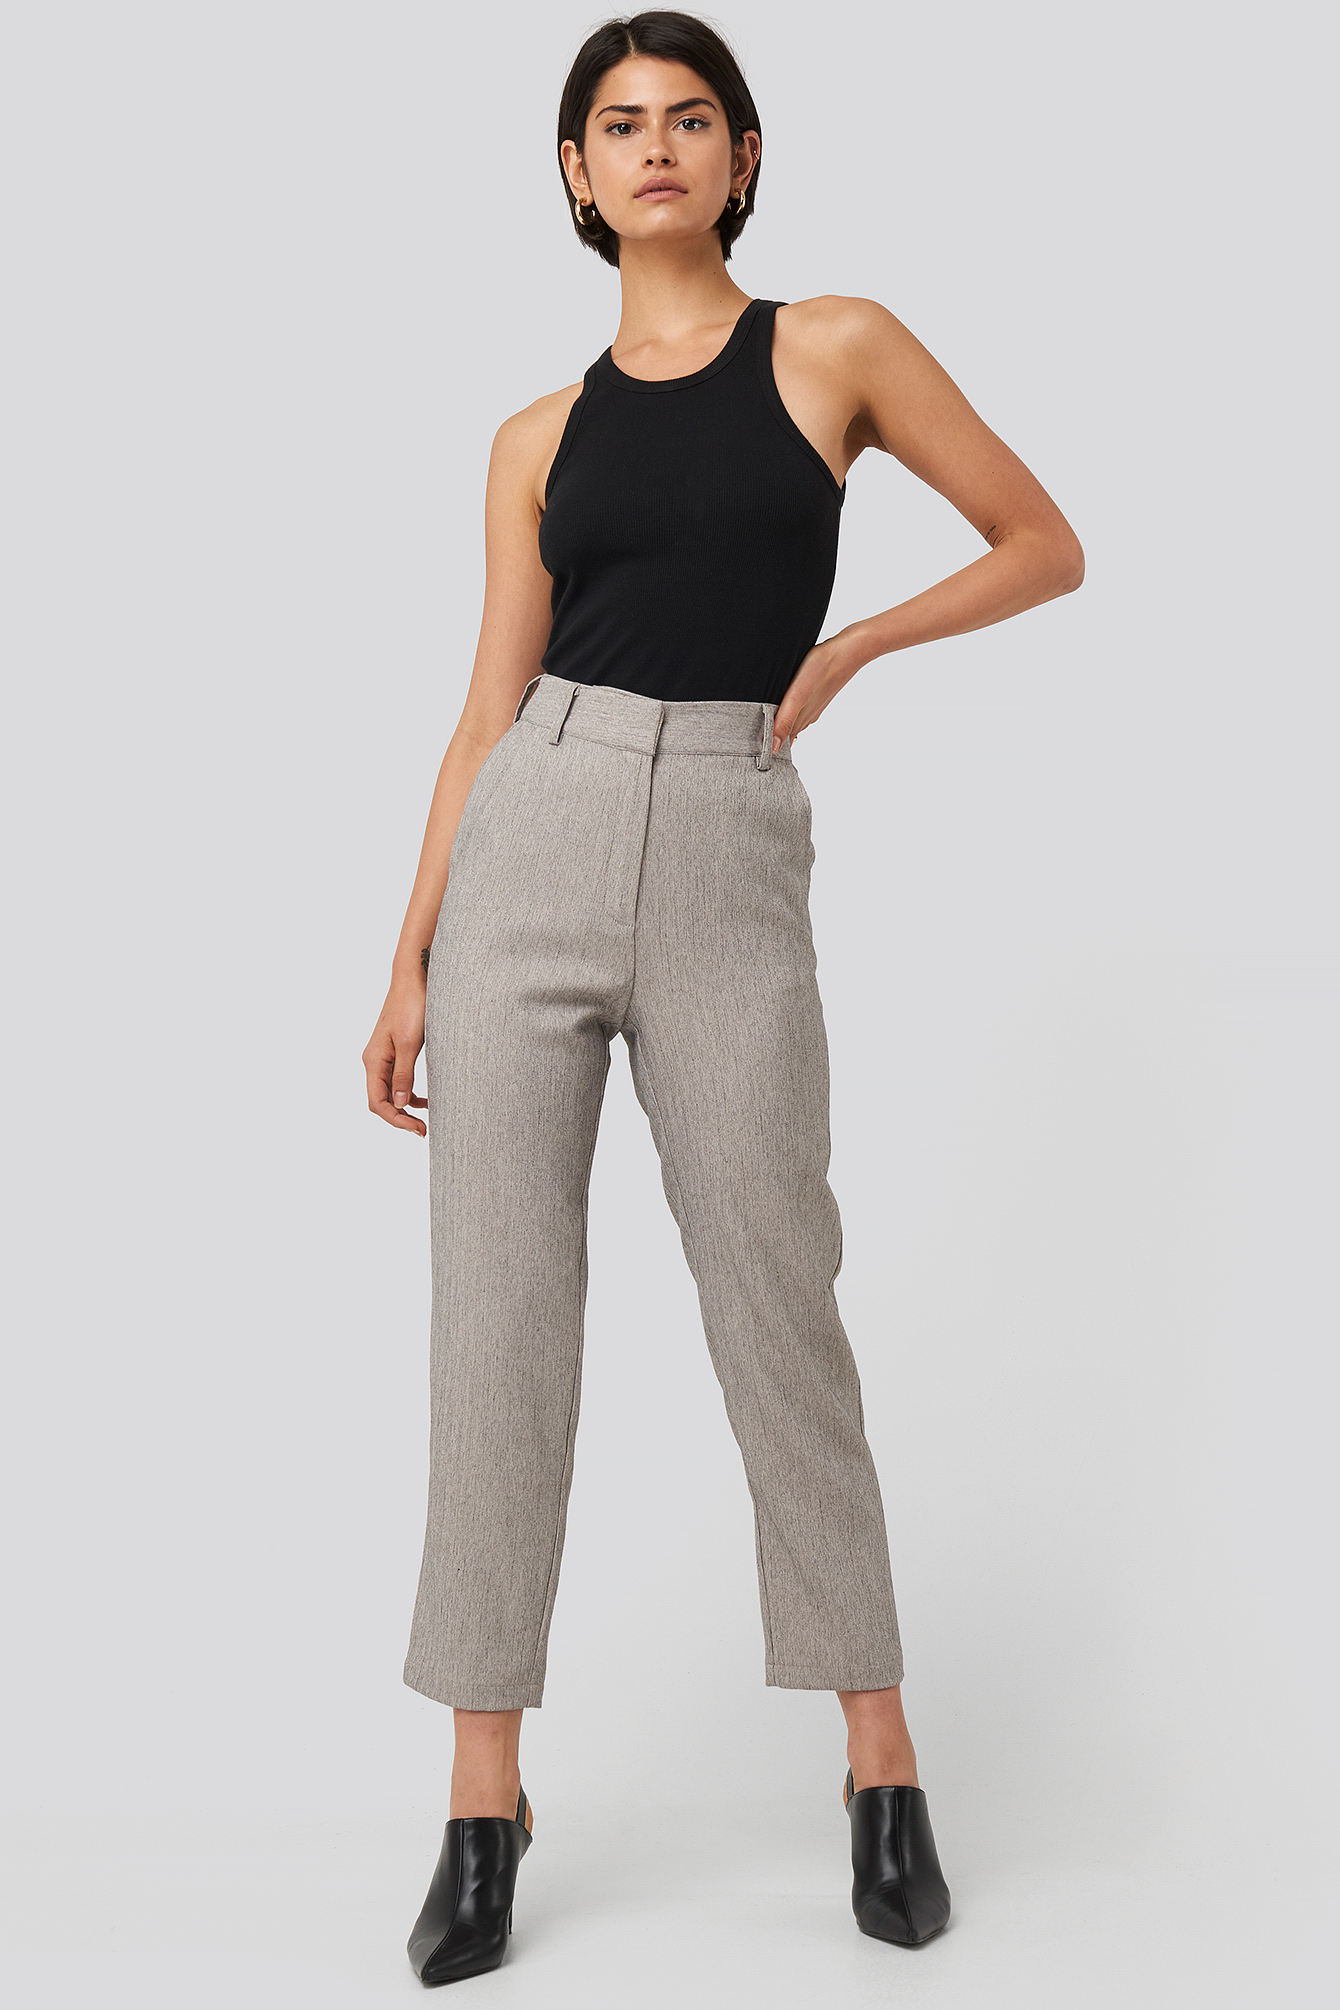 Grey Melange Cropped Suit Pants